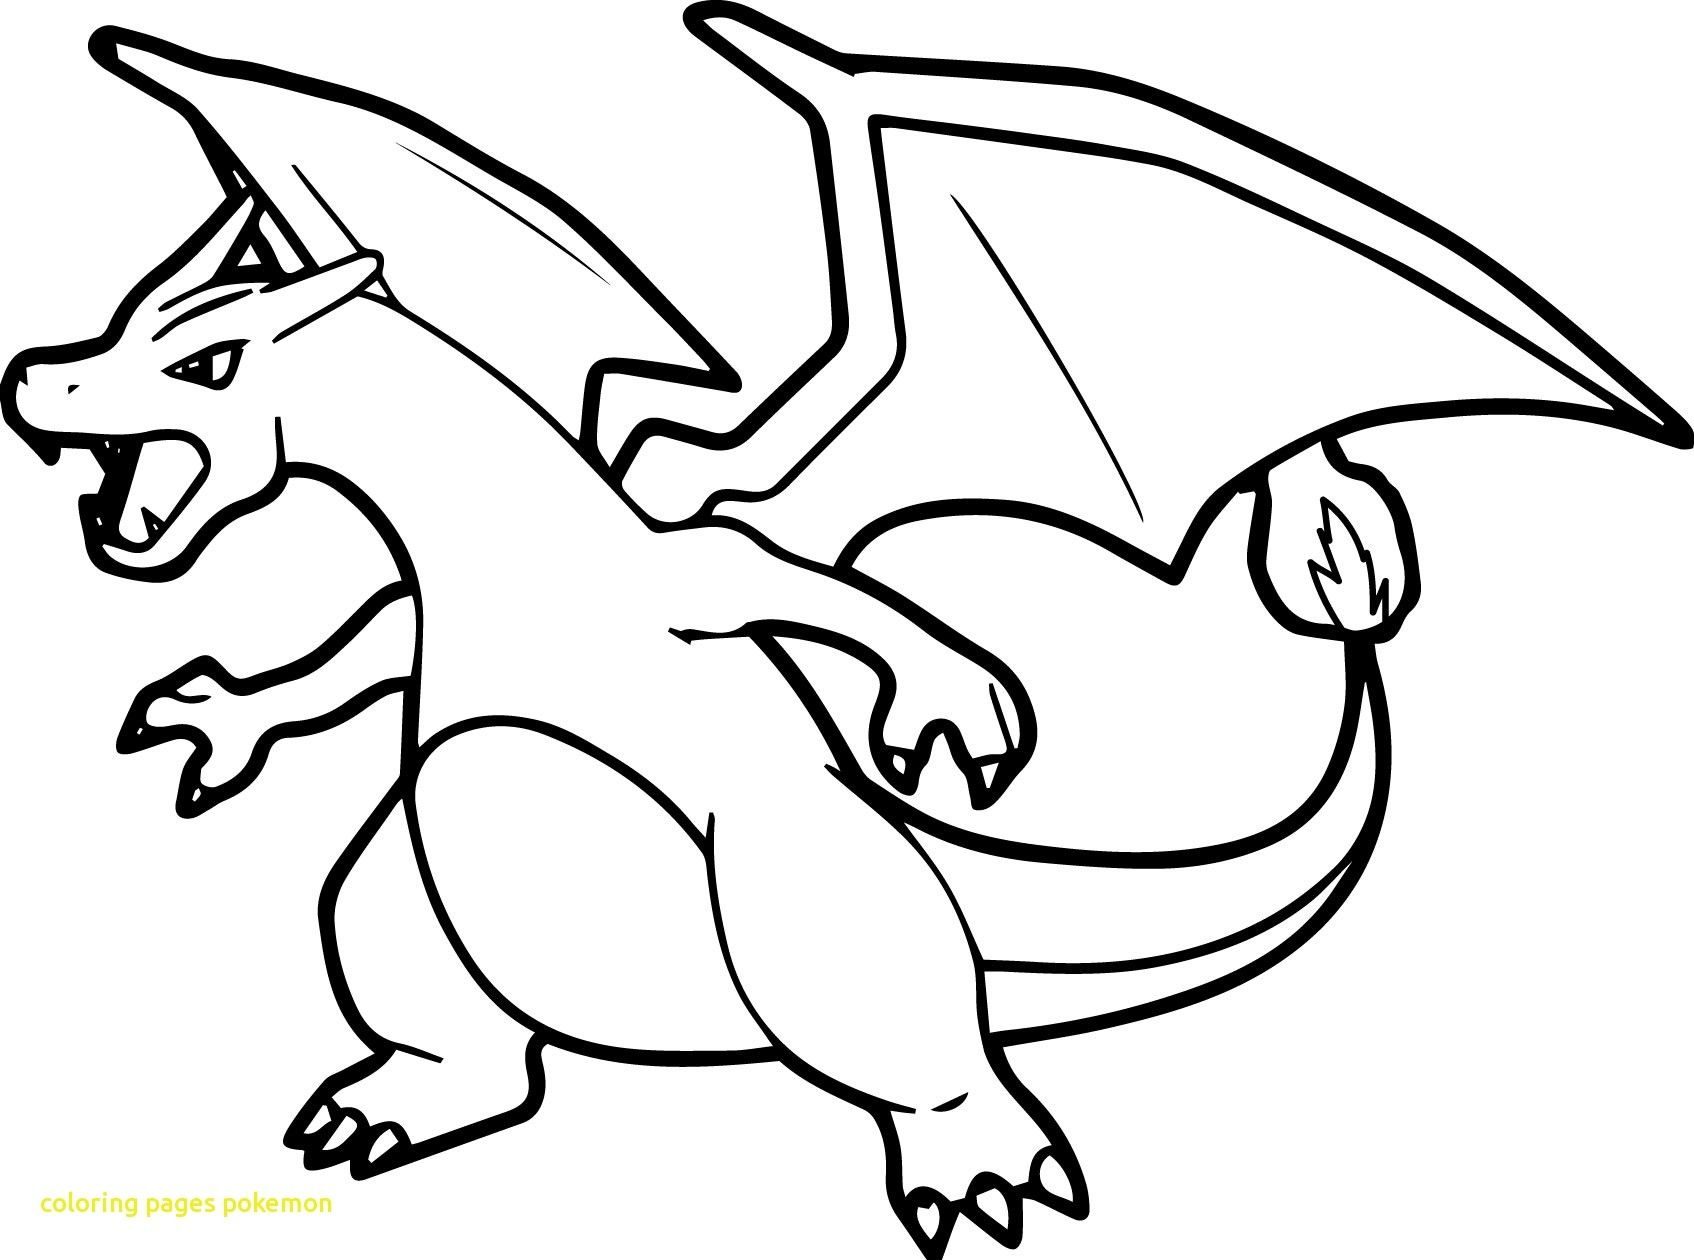 New Pokemon Charizard Coloring Pages Collection Printable Pokeman Pokemon Coloring Pages Pokemon Coloring Coloring Pages